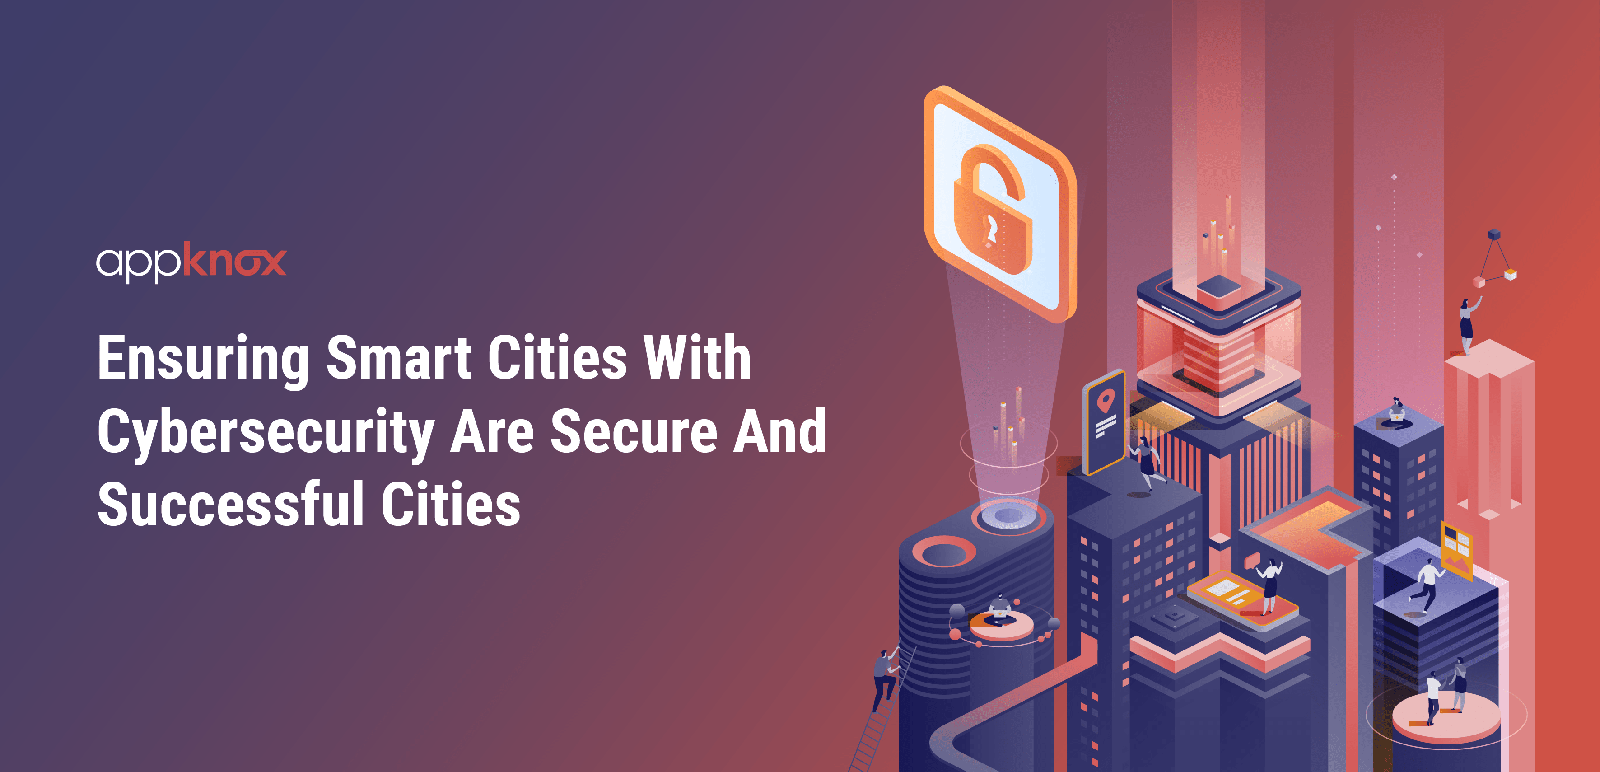 Ensuring Smart Cities With Cybersecurity Are Secure And Successful Cities